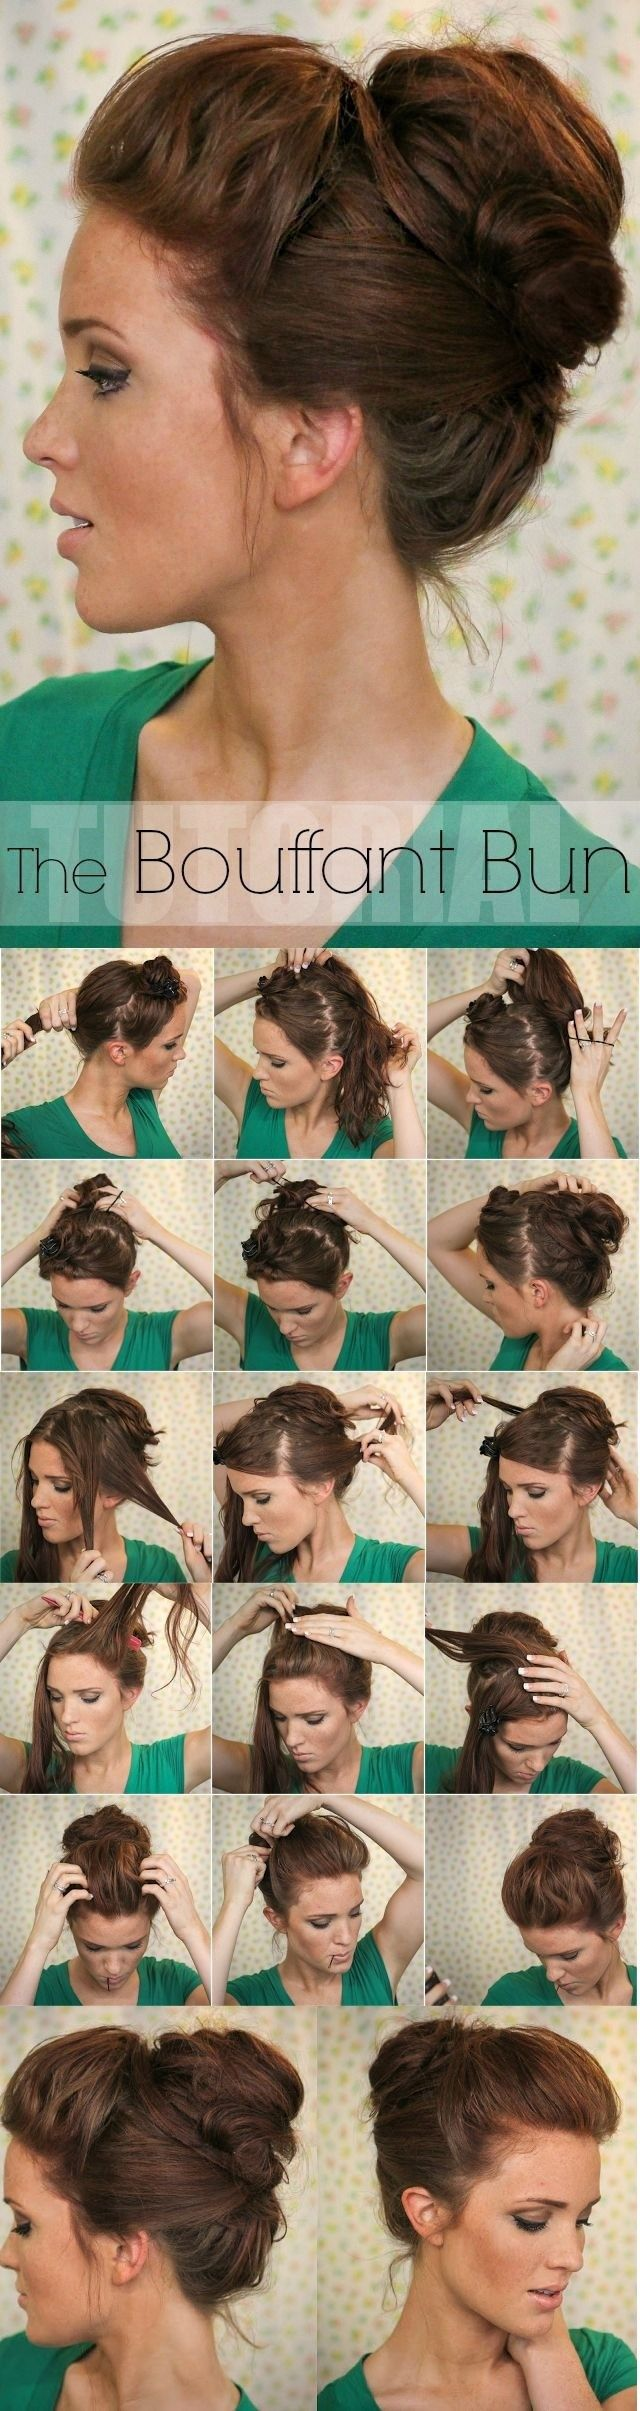 50 Most Beautiful Hairstyles All Women Will Love | Styles Weekly